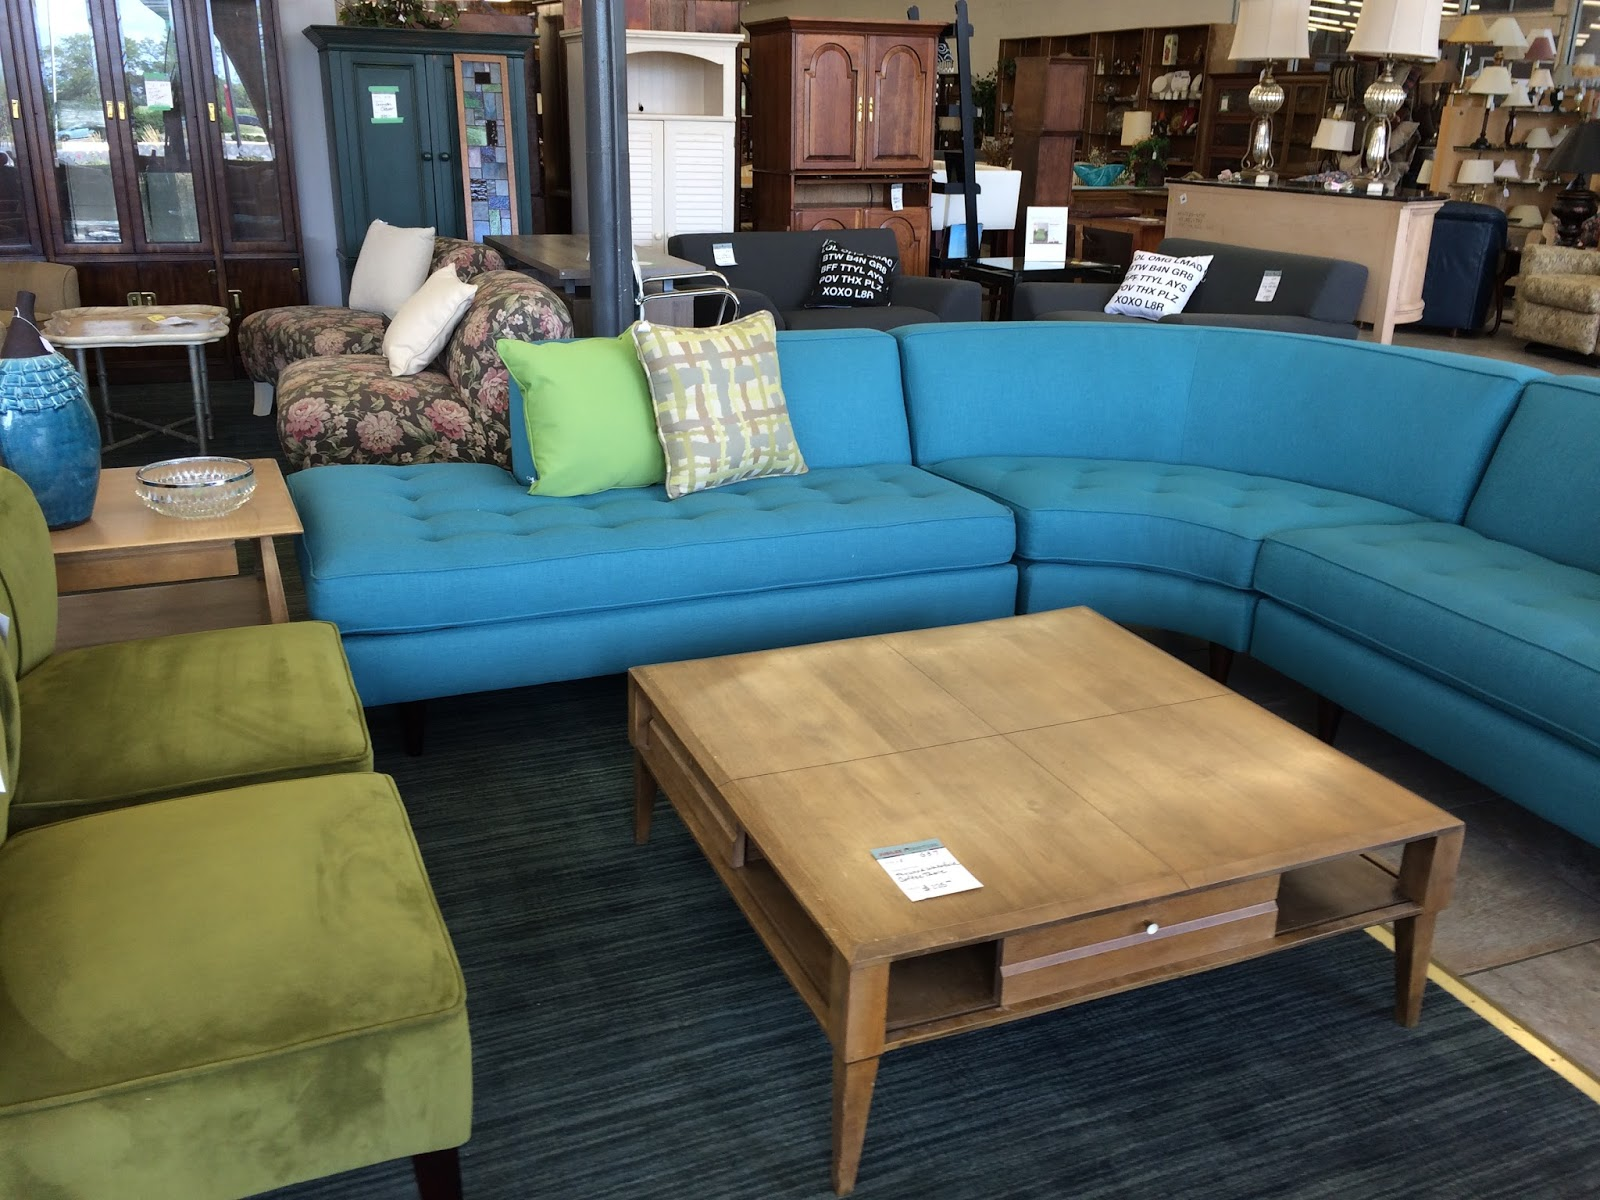 xoxo furniture. Xoxo Furniture. Absolutely Gorgeous Three Piece Sectional! In Pristine Condition! Love It! Furniture A